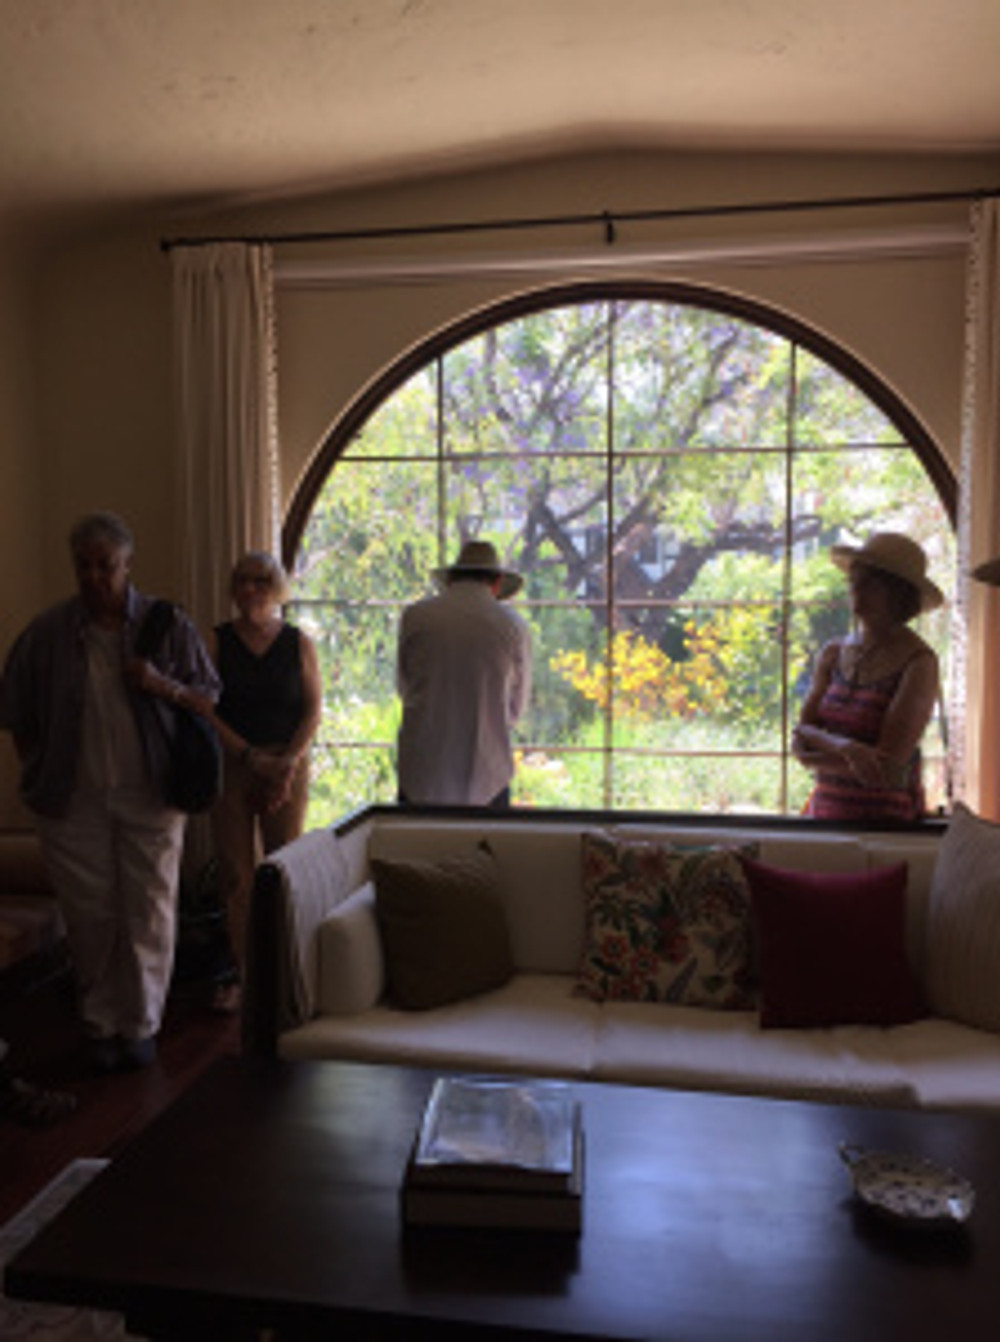 Looking from the front room out to the garden. The windows are laminated to dampen noise from the street. Photo by Clara Josephs, © 2016.